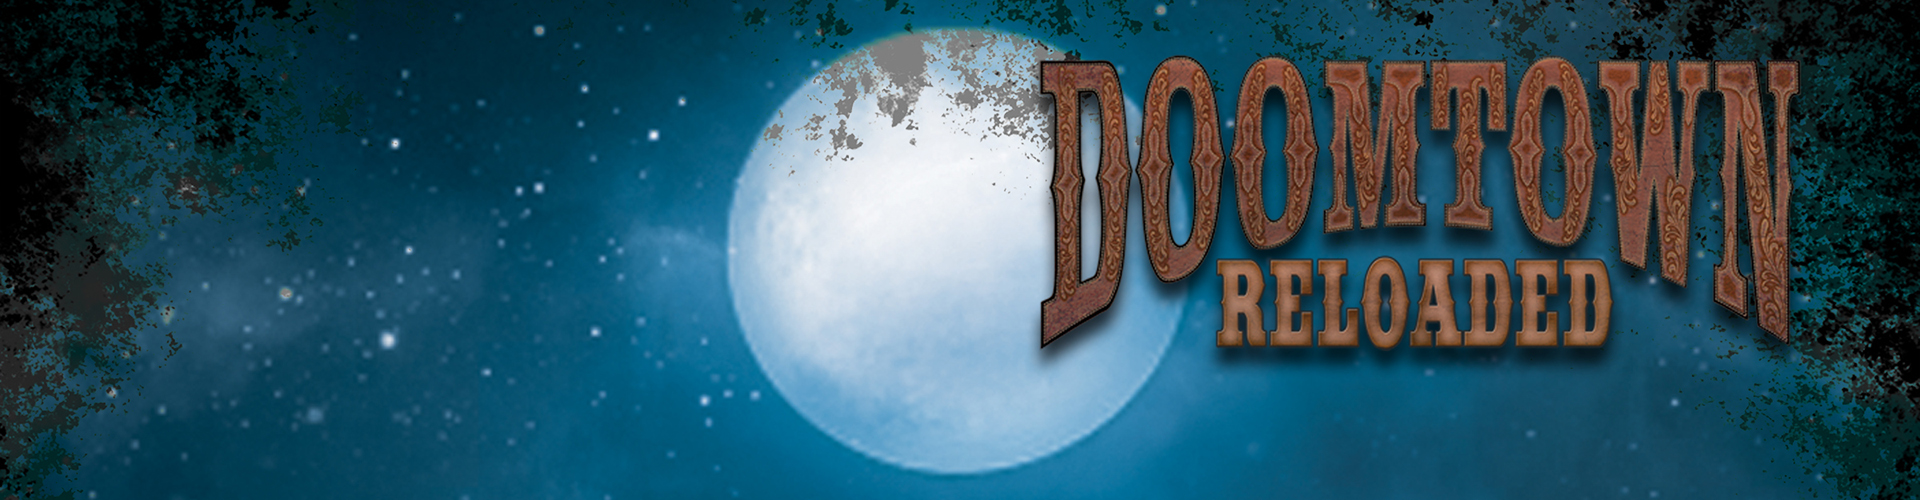 full moon behind doomtown reloaded logo